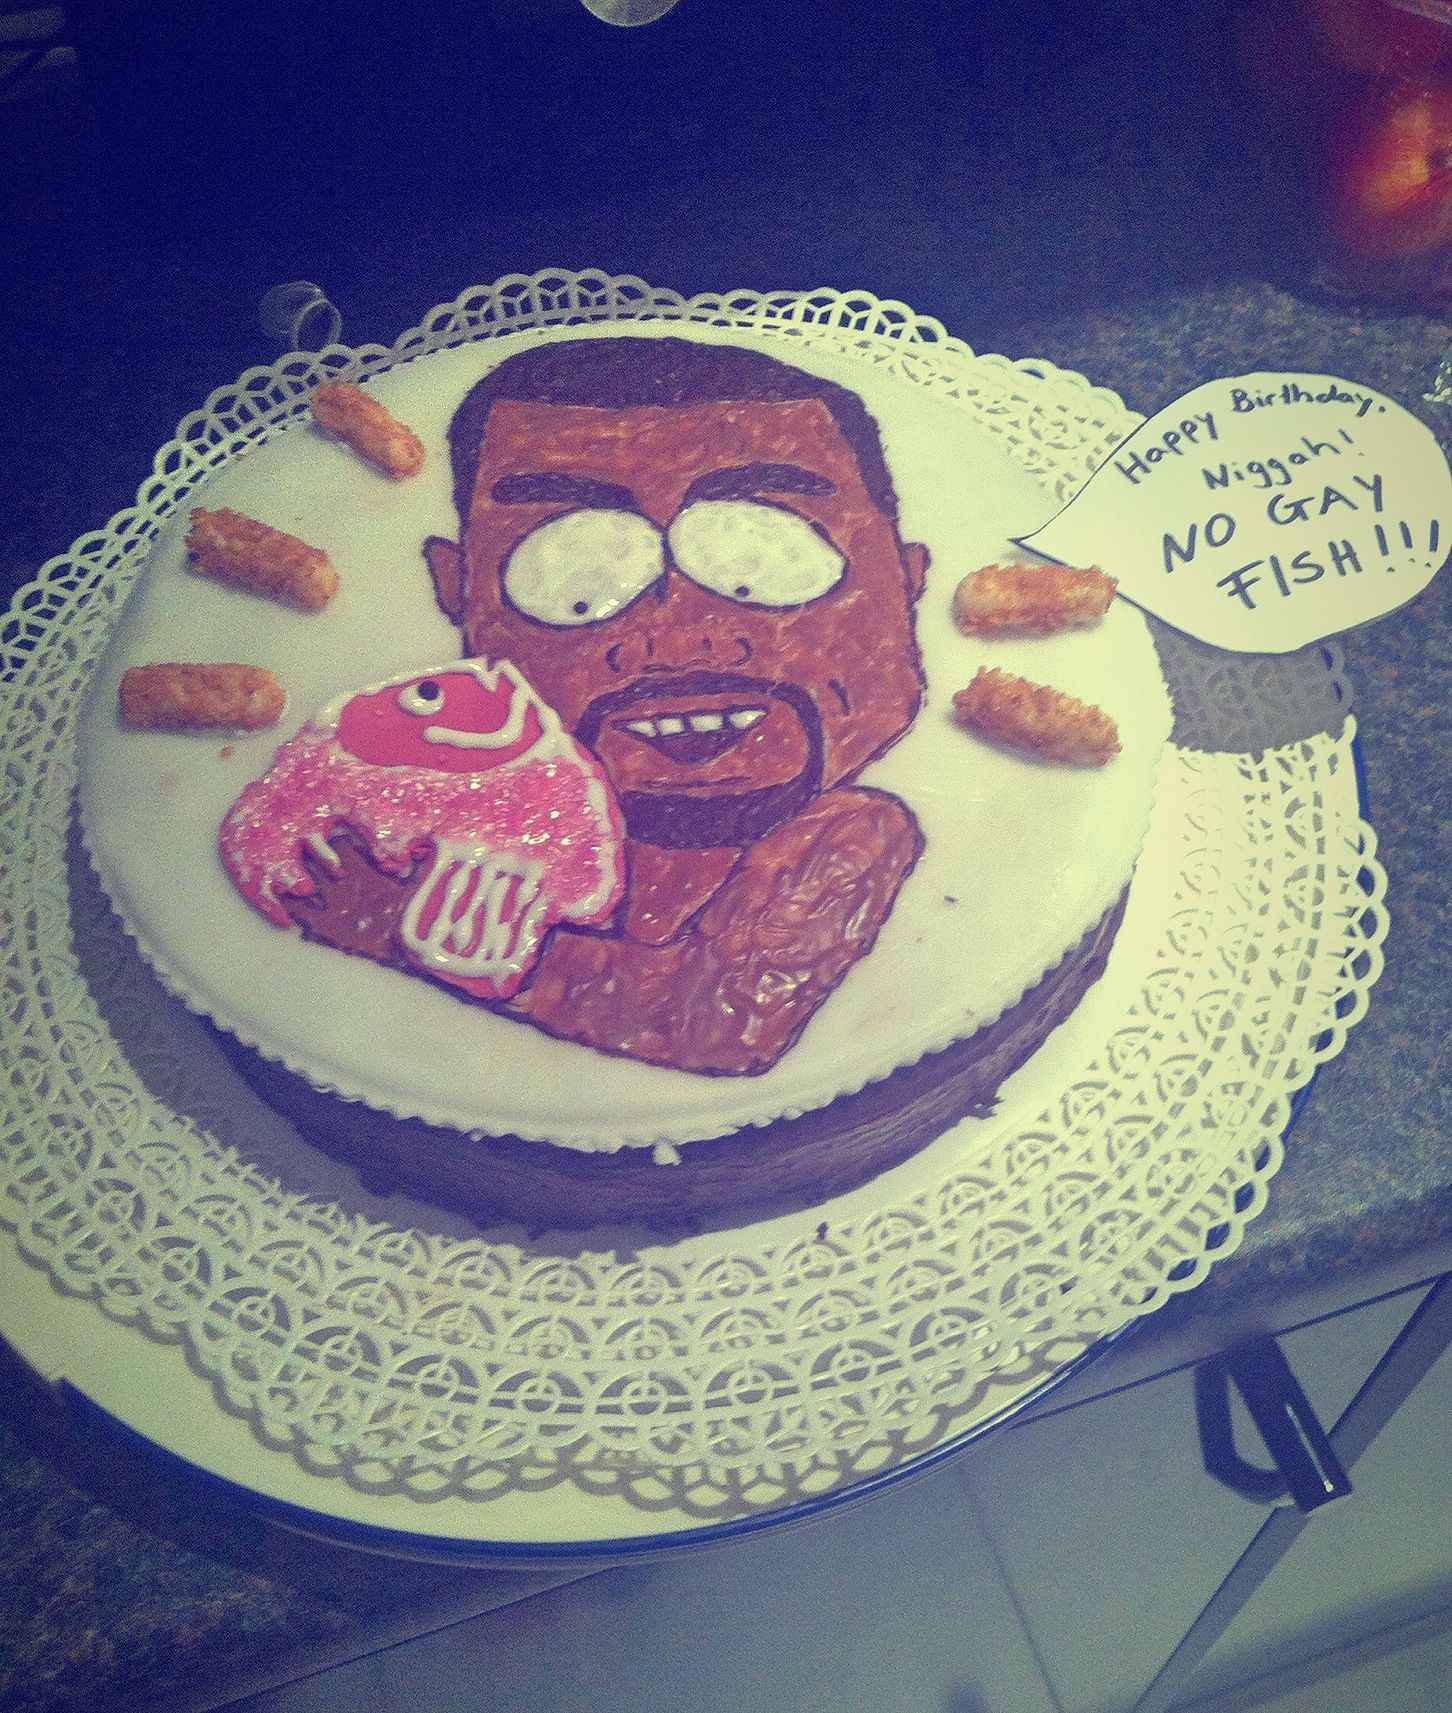 South Park Kanye West Birthday Chocolate Cake Playing With Food